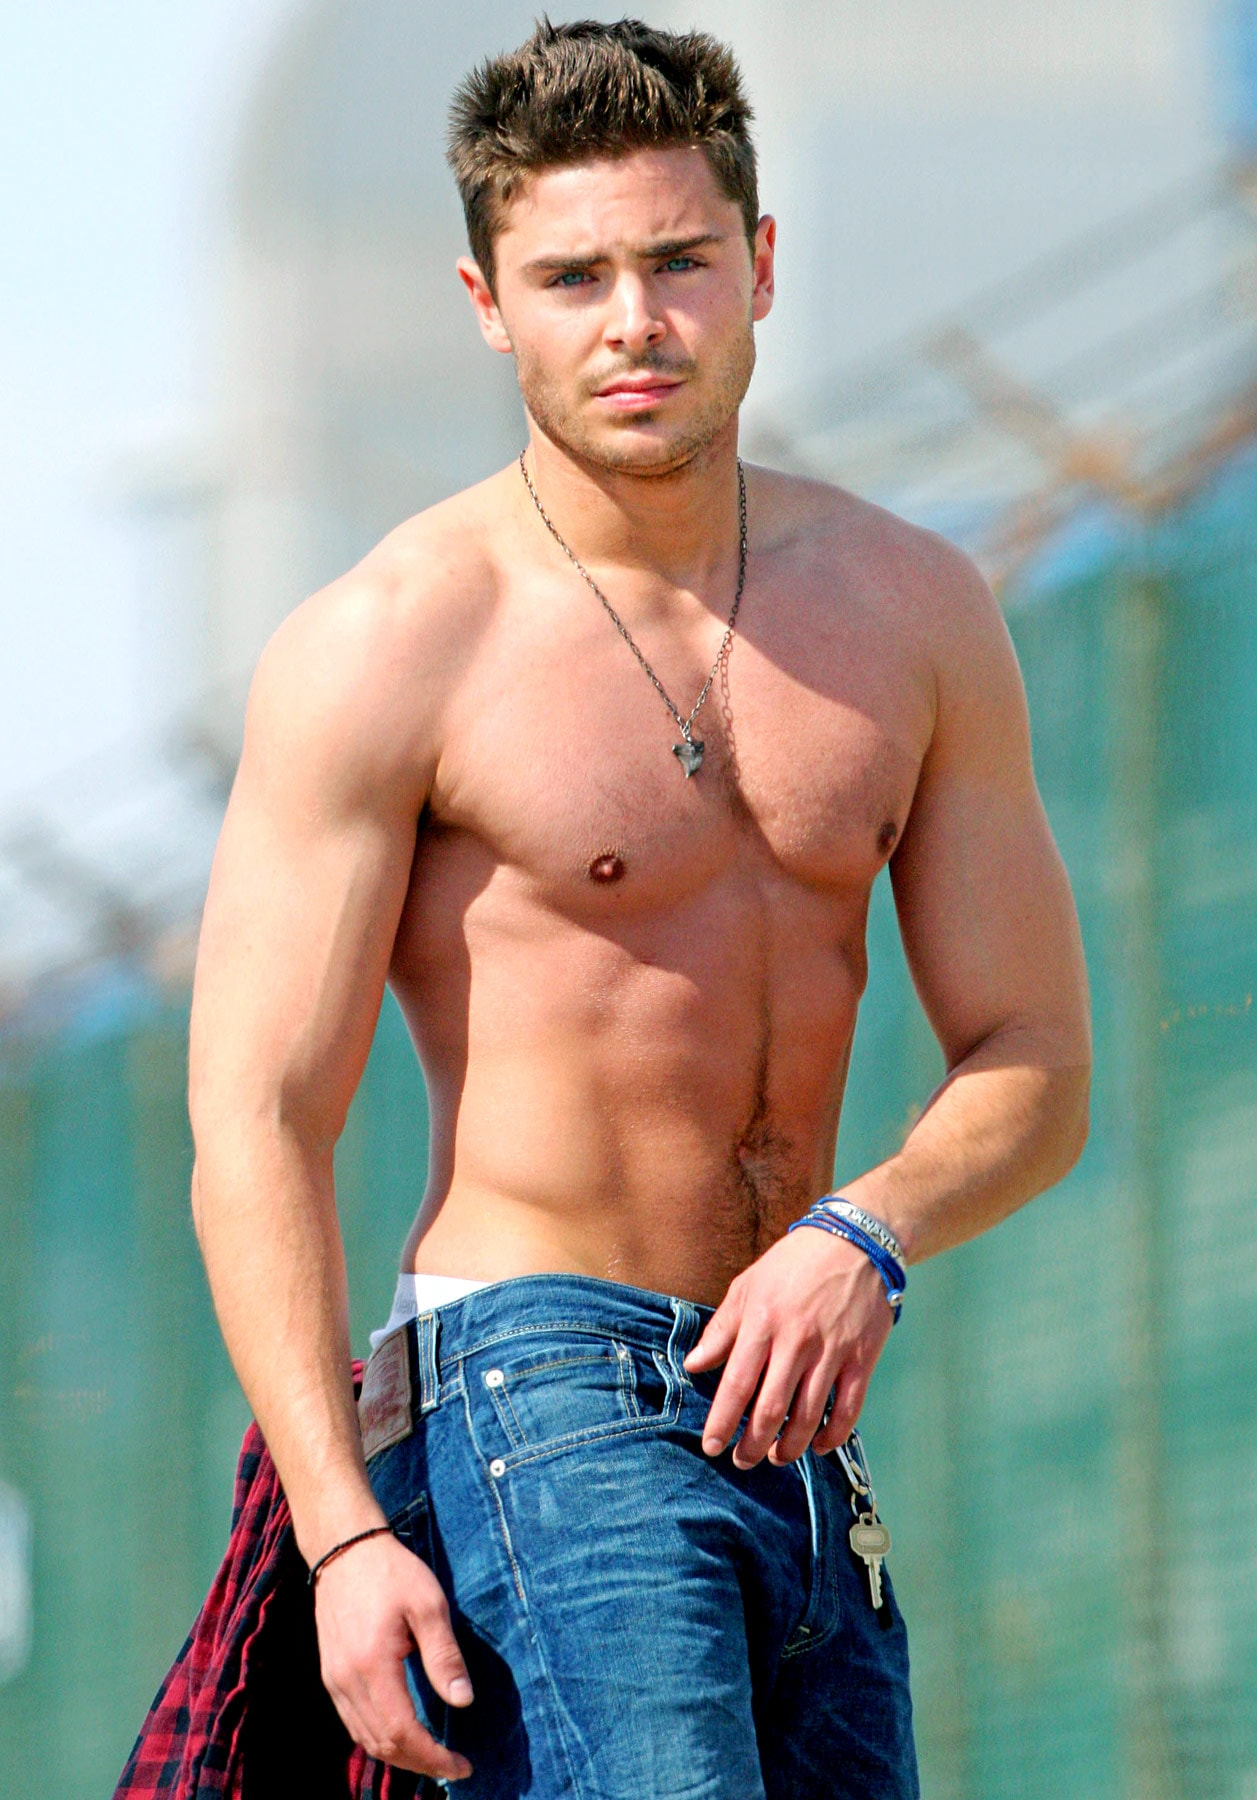 Zac Efron For mobile